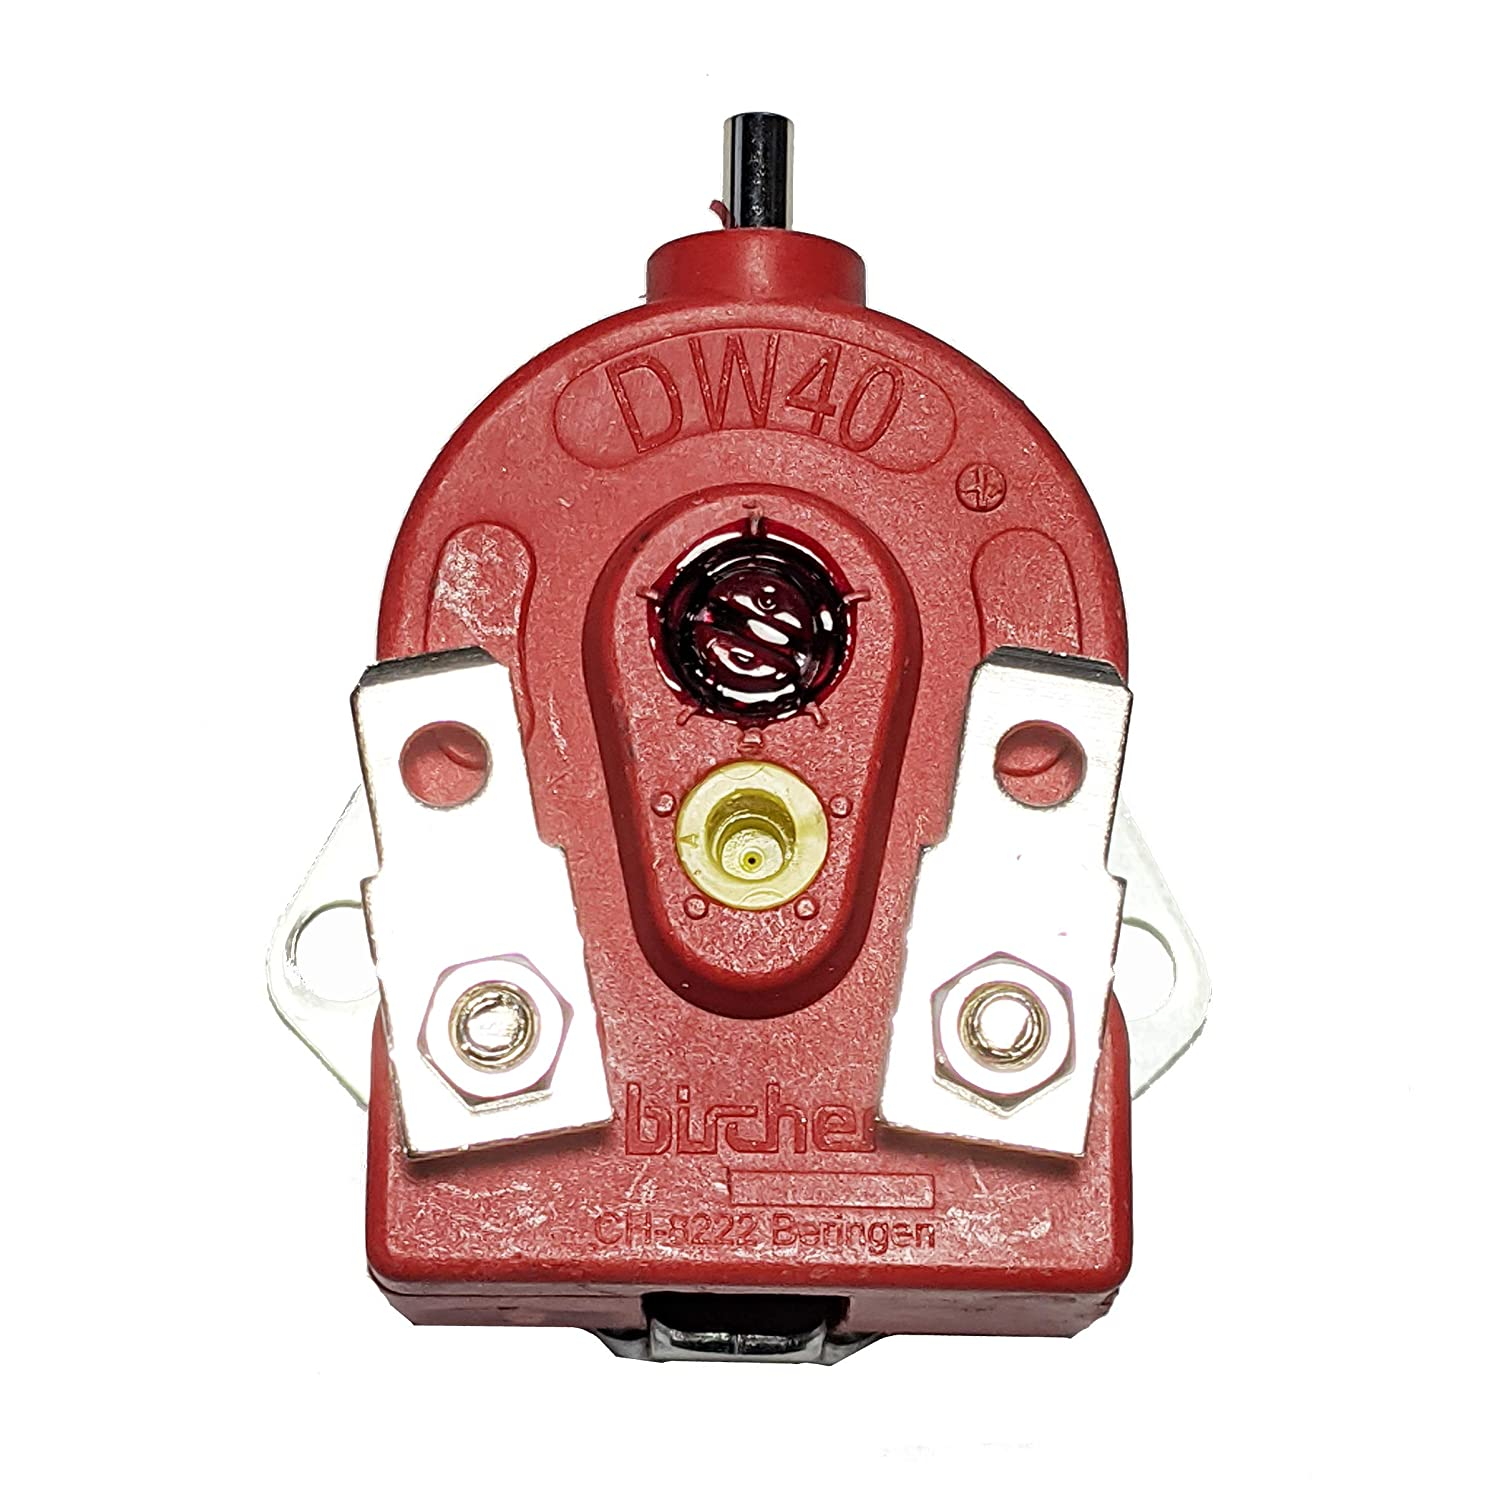 BIRCHER Reglomat Selling and selling DW40 AIR Wave Pressure Edge Response - Shipping included Obstruct